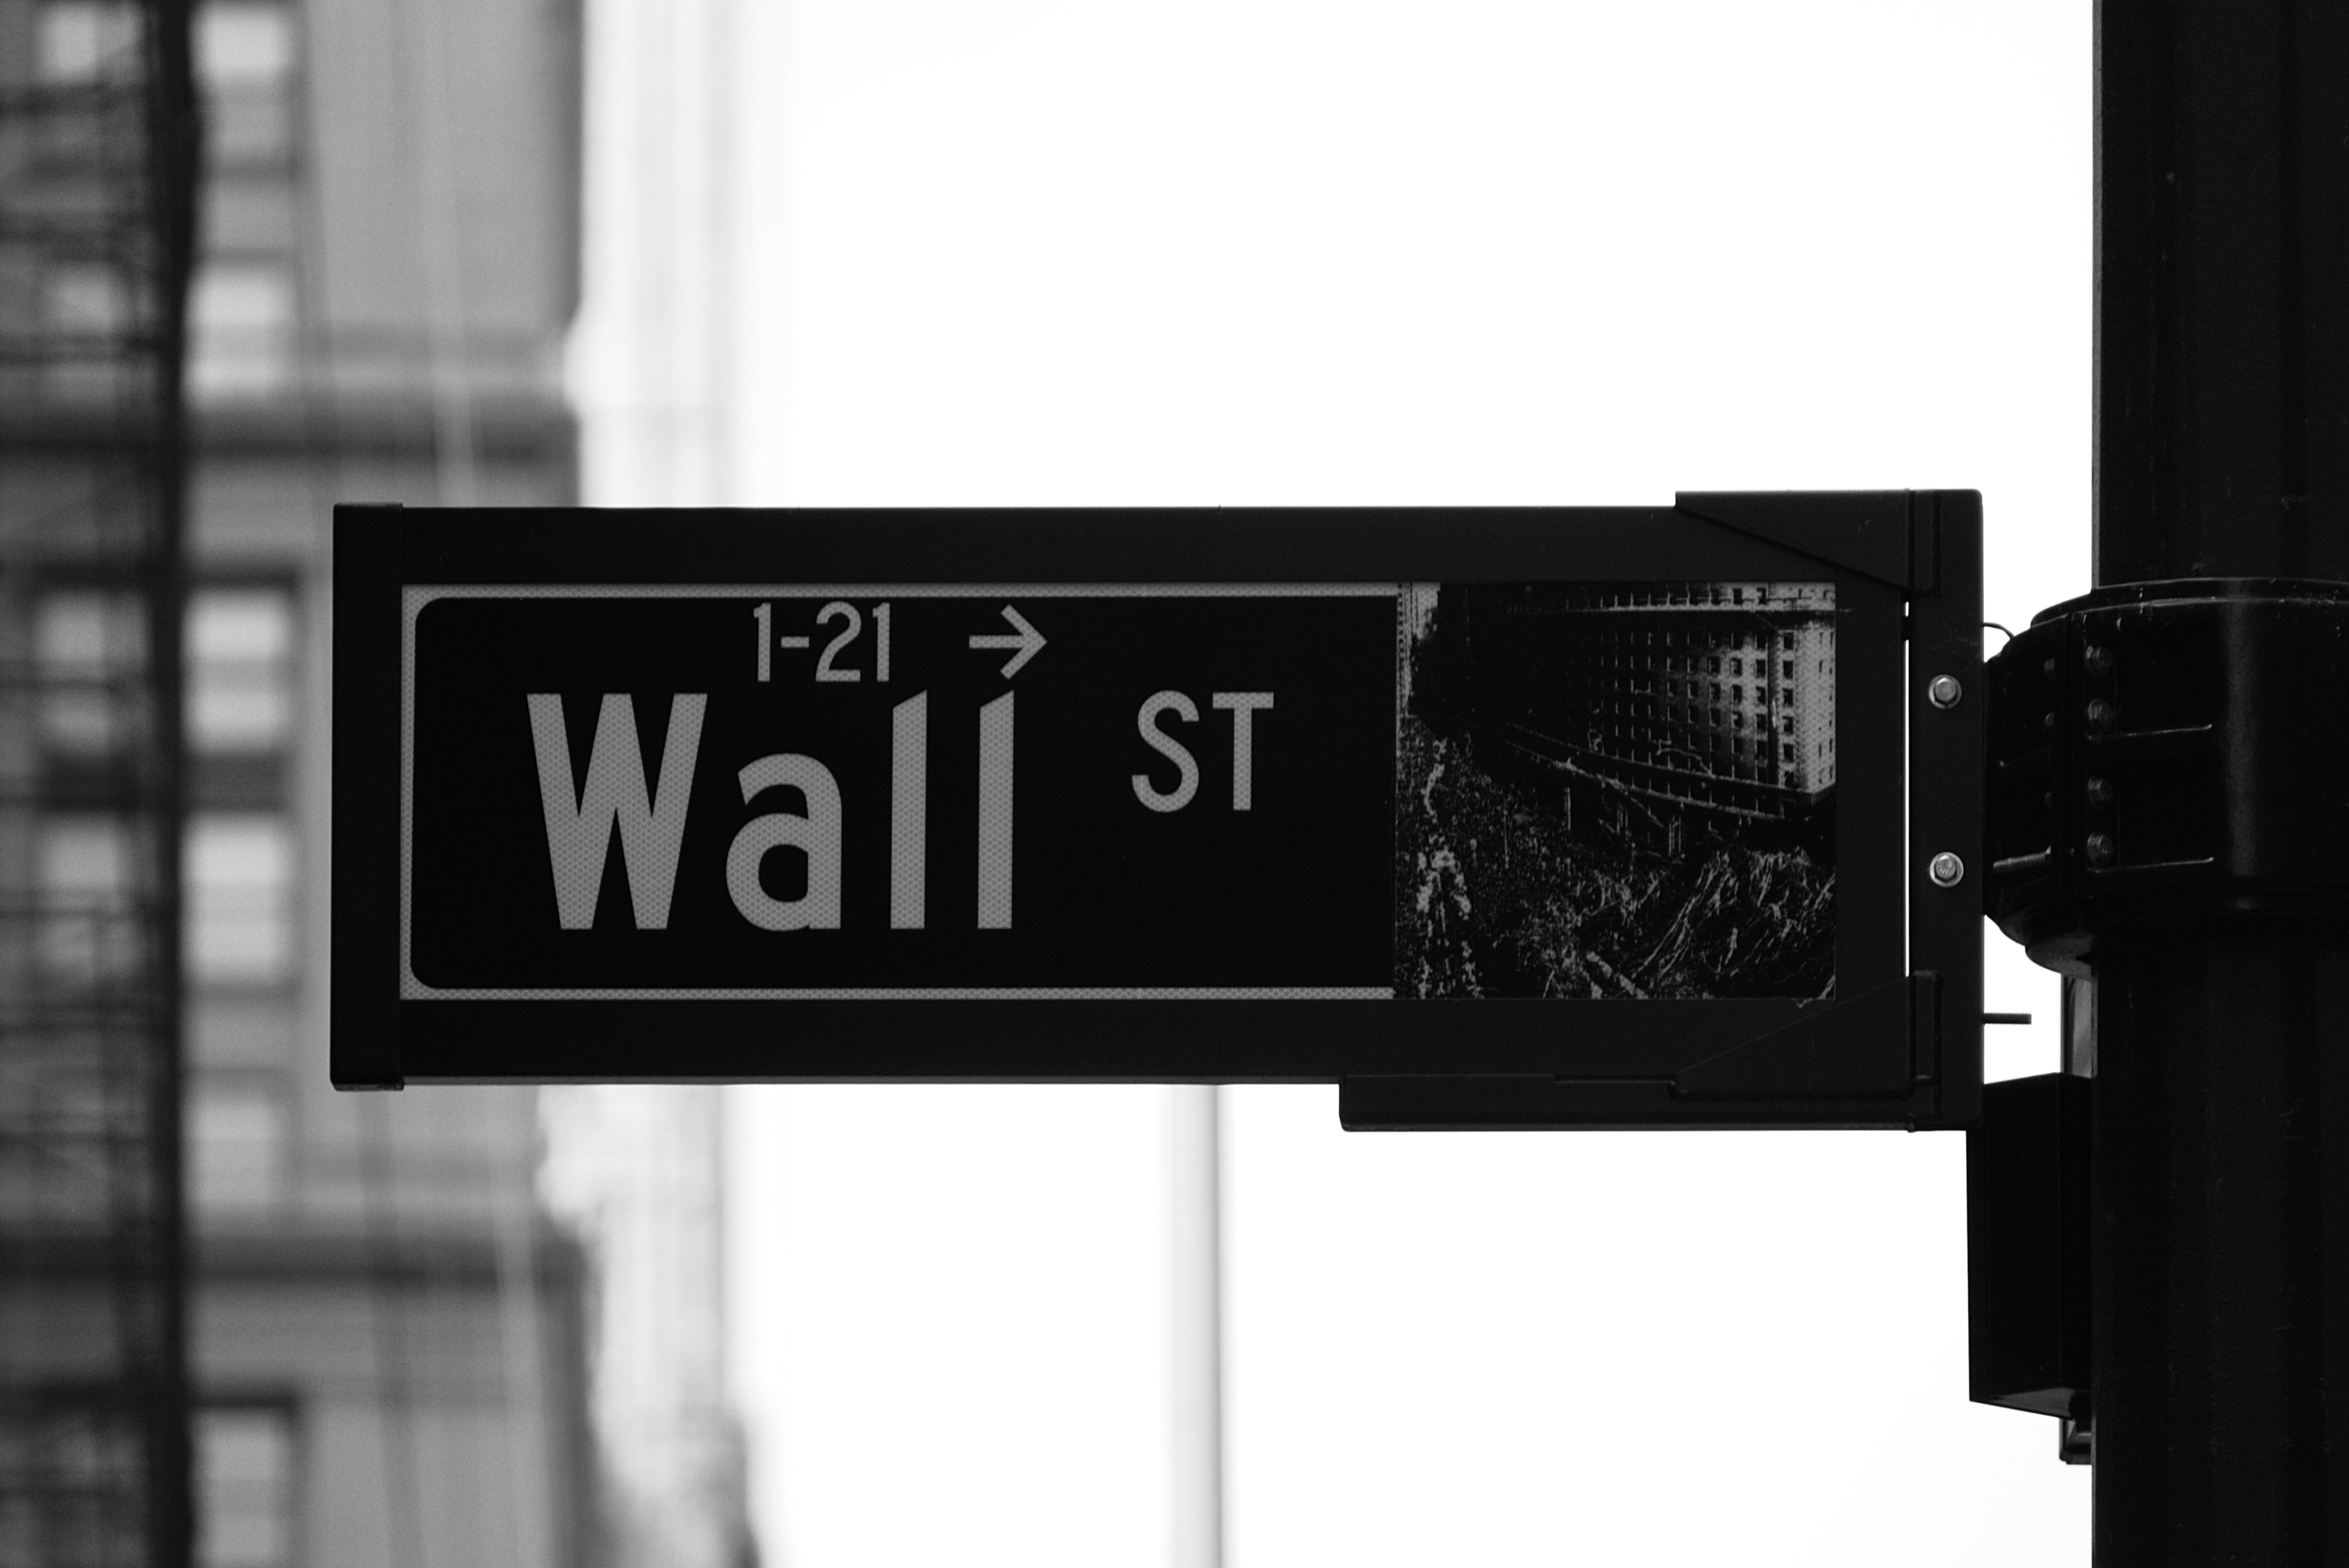 wall st. sign